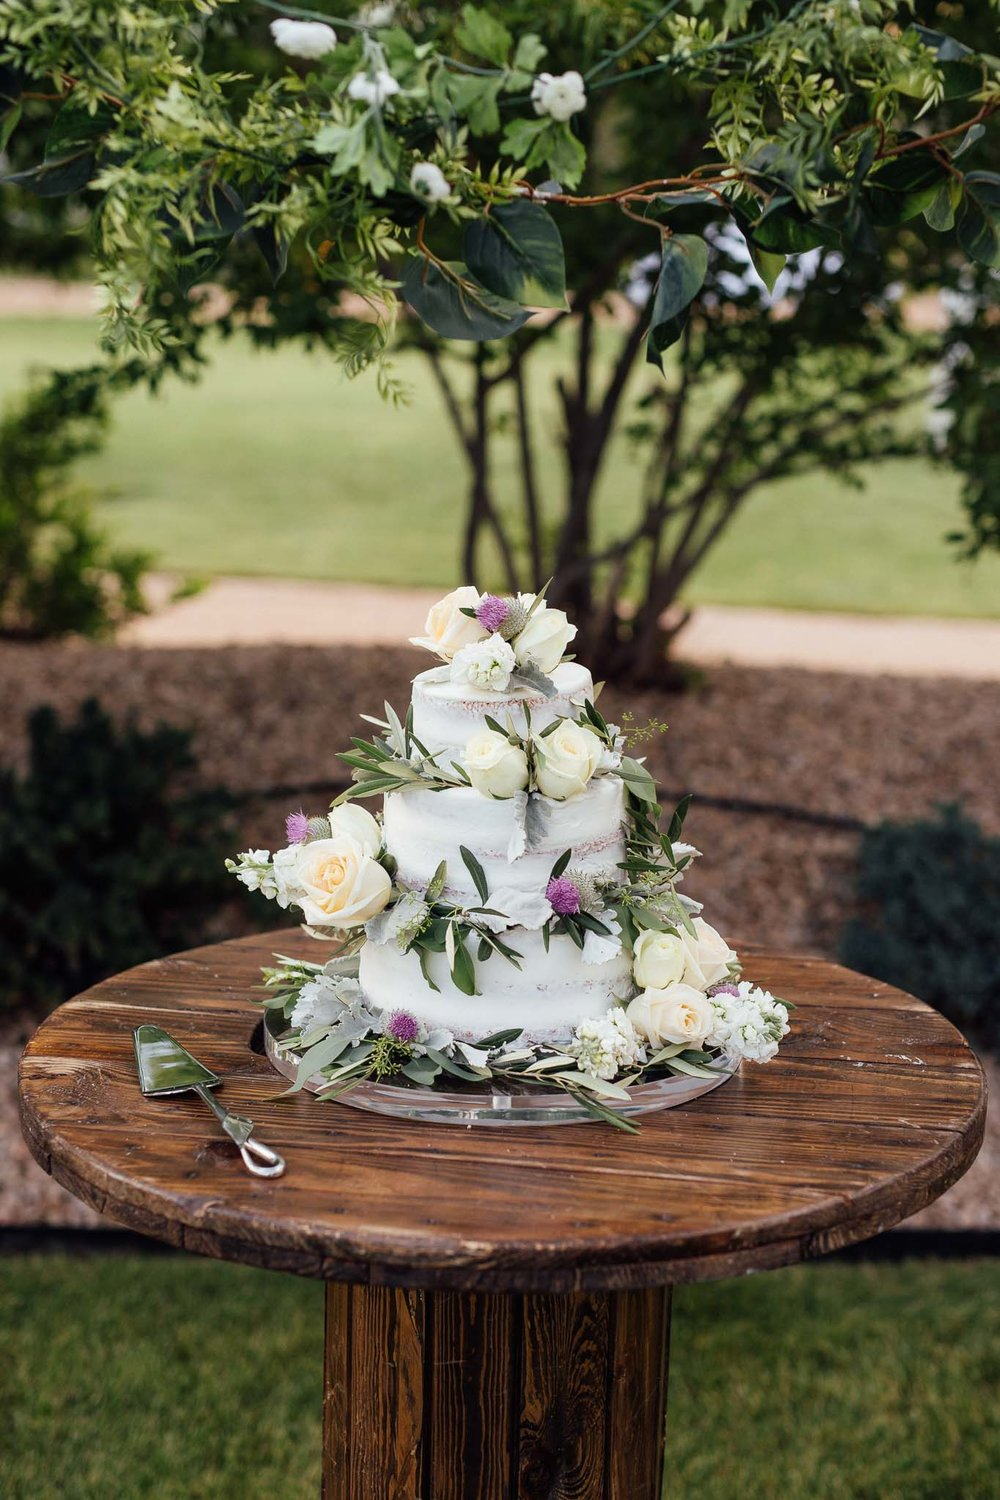 Naked wedding cake with flowers and Scottish thistles at a Midway Utah mountain wedding